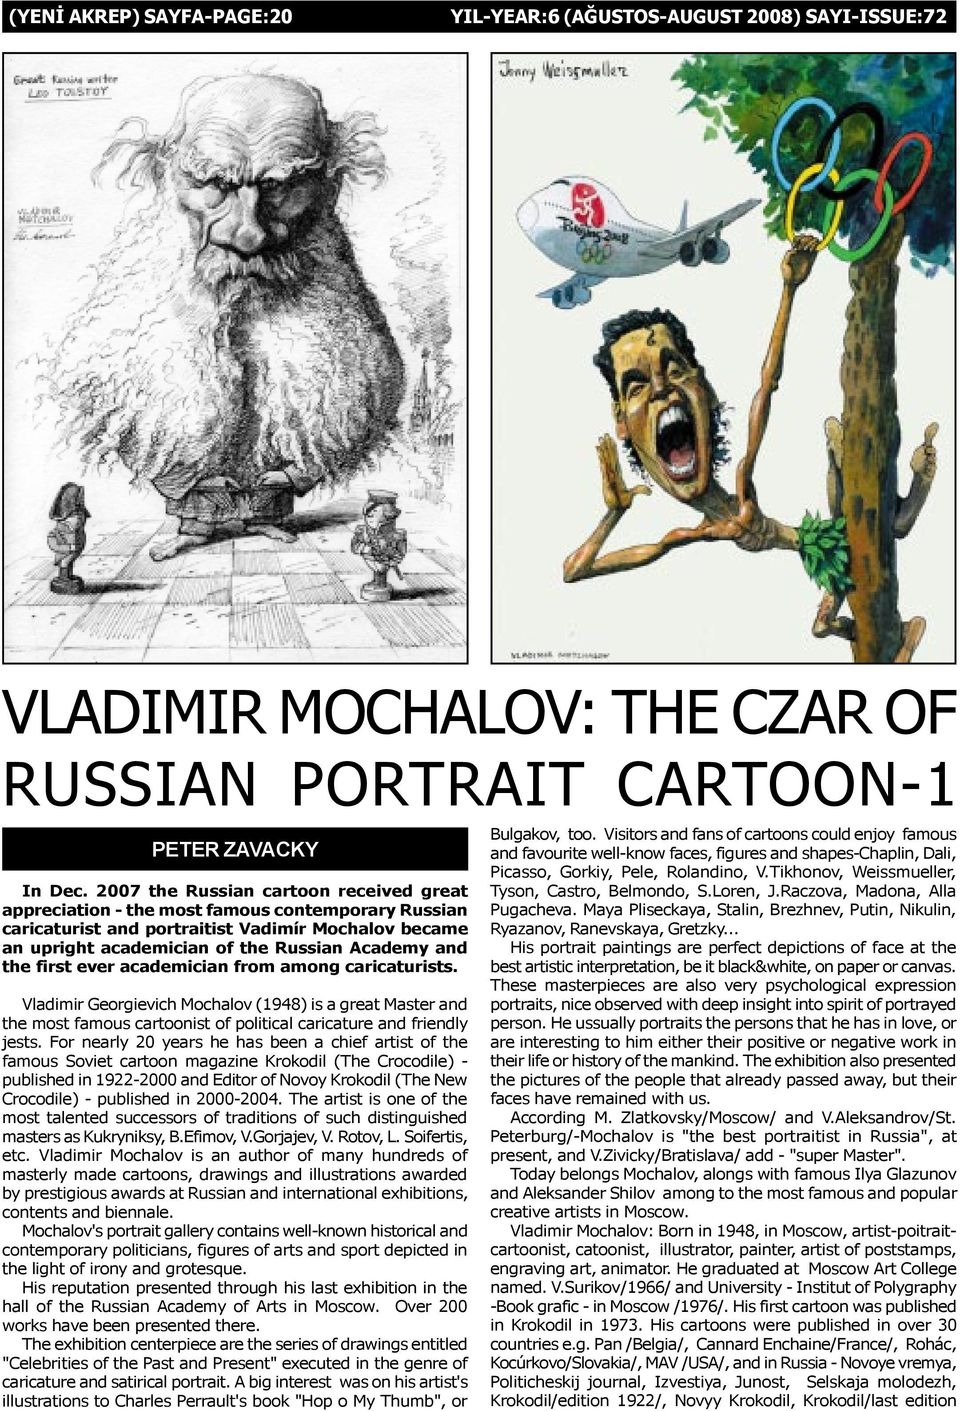 first ever academician from among caricaturists. Vladimir Georgievich Mochalov (1948) is a great Master and the most famous cartoonist of political caricature and friendly jests.